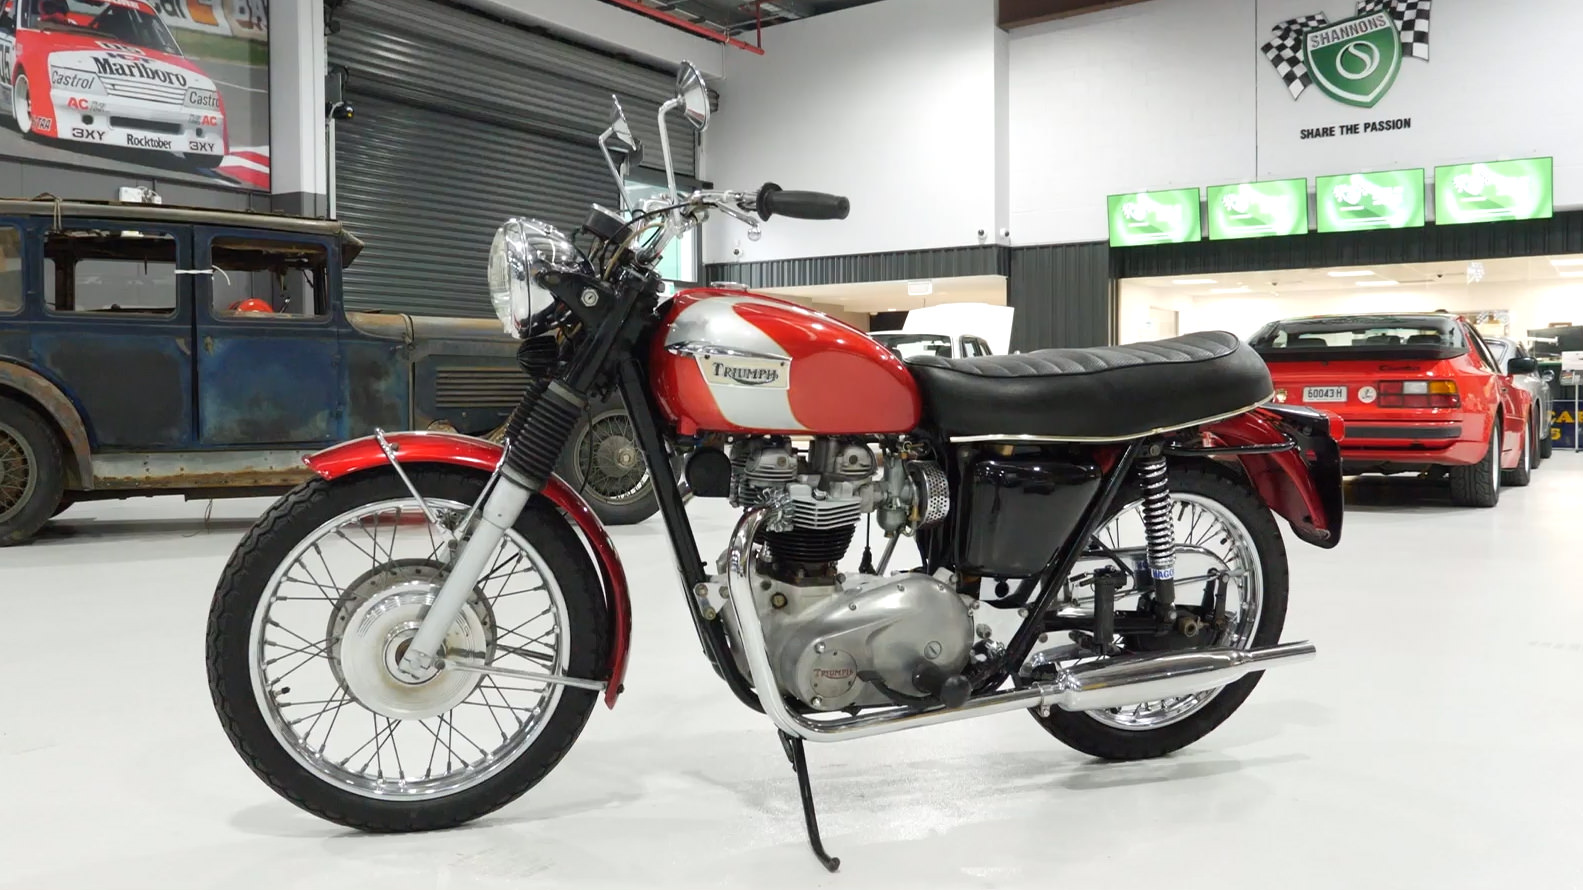 1969 Triumph Trophy 650cc Motorcycle - 2021 Shannons Spring Timed Online Auction